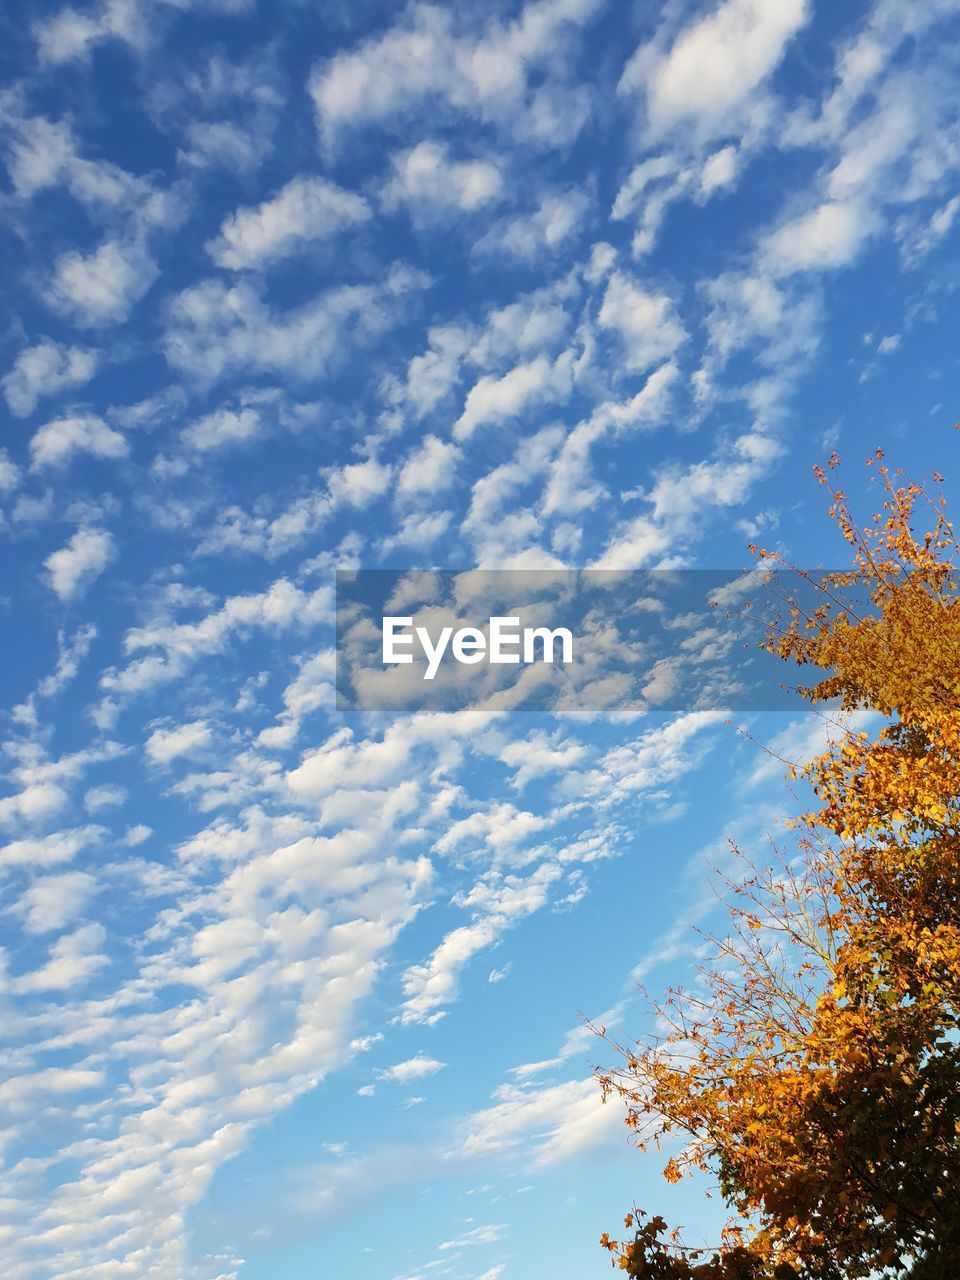 cloud - sky, sky, low angle view, beauty in nature, nature, no people, tree, tranquility, plant, day, scenics - nature, tranquil scene, outdoors, growth, blue, change, autumn, branch, sunlight, idyllic